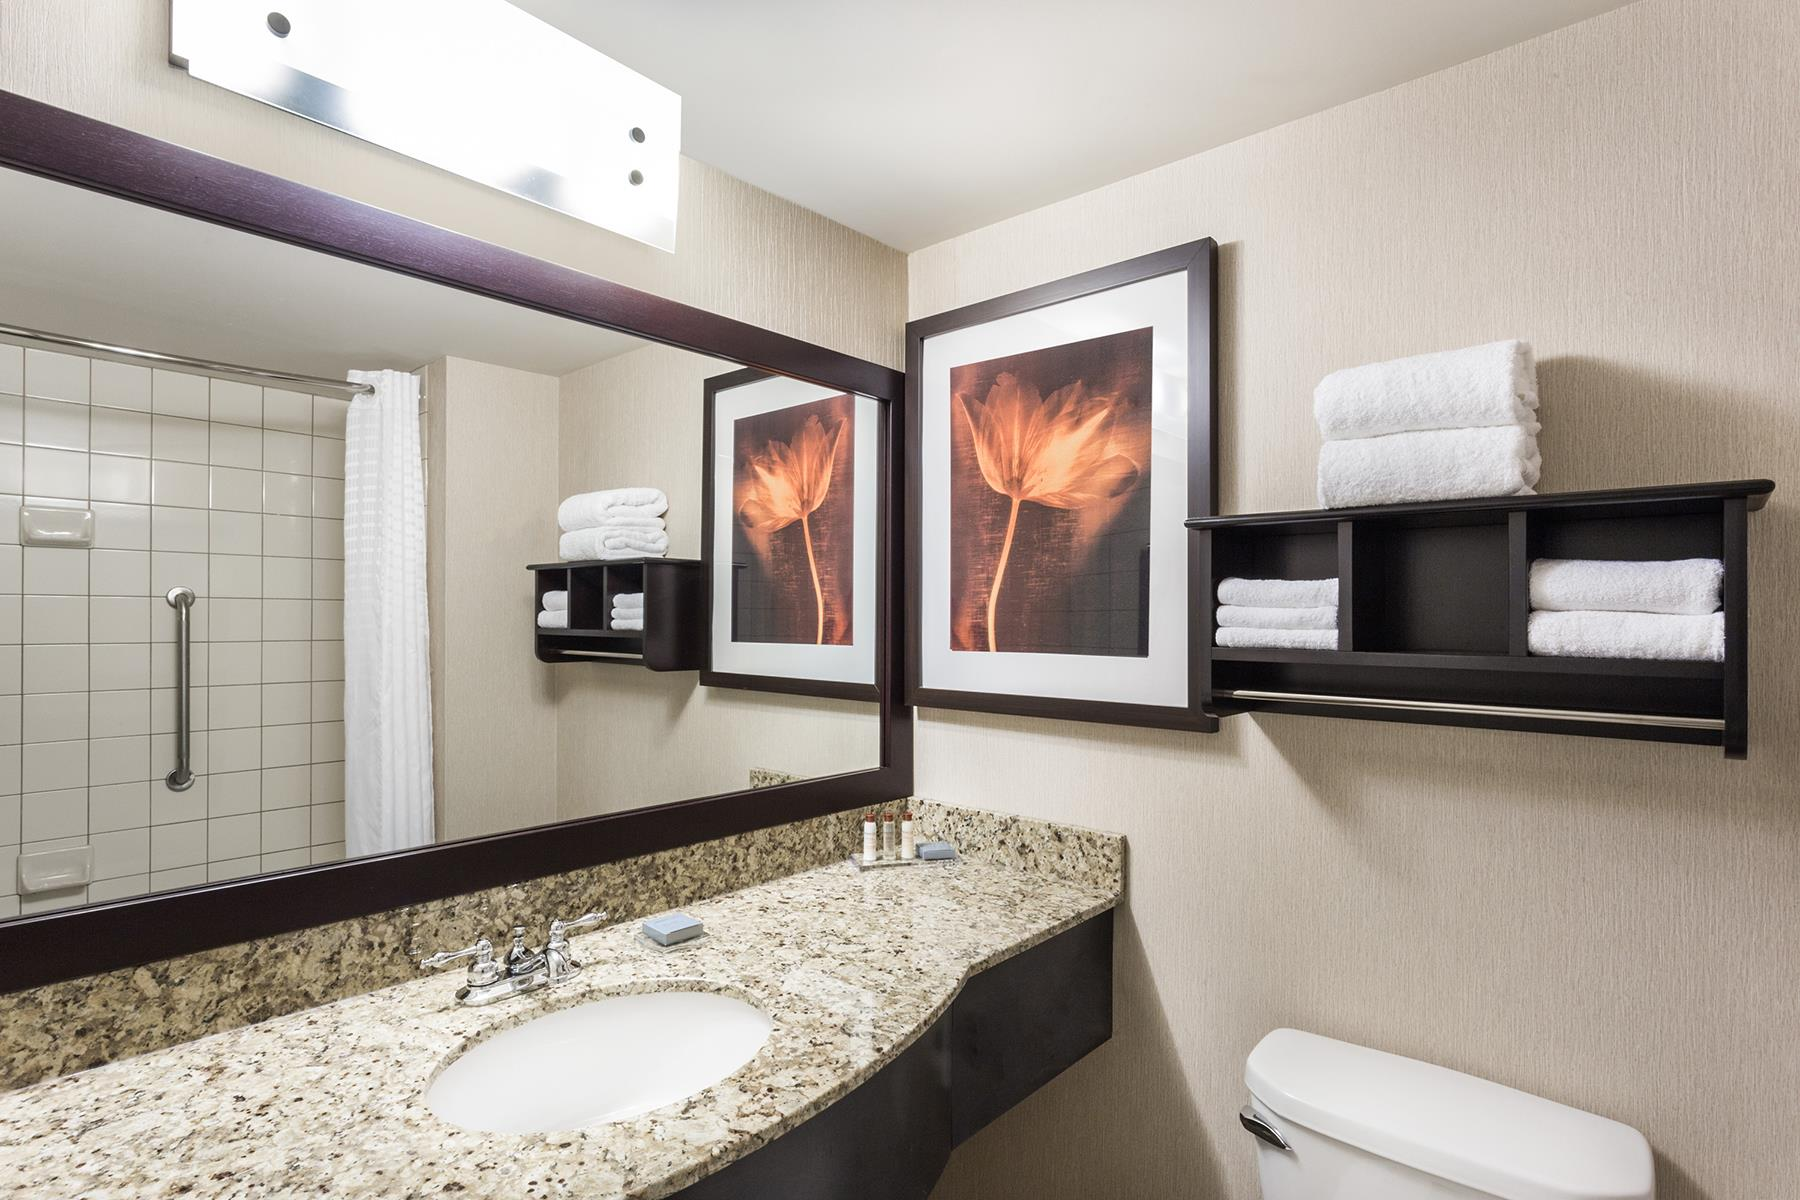 The spacious and beautiful bathroom of a suite at the Wingate by Wyndham Hotel in Regina SK